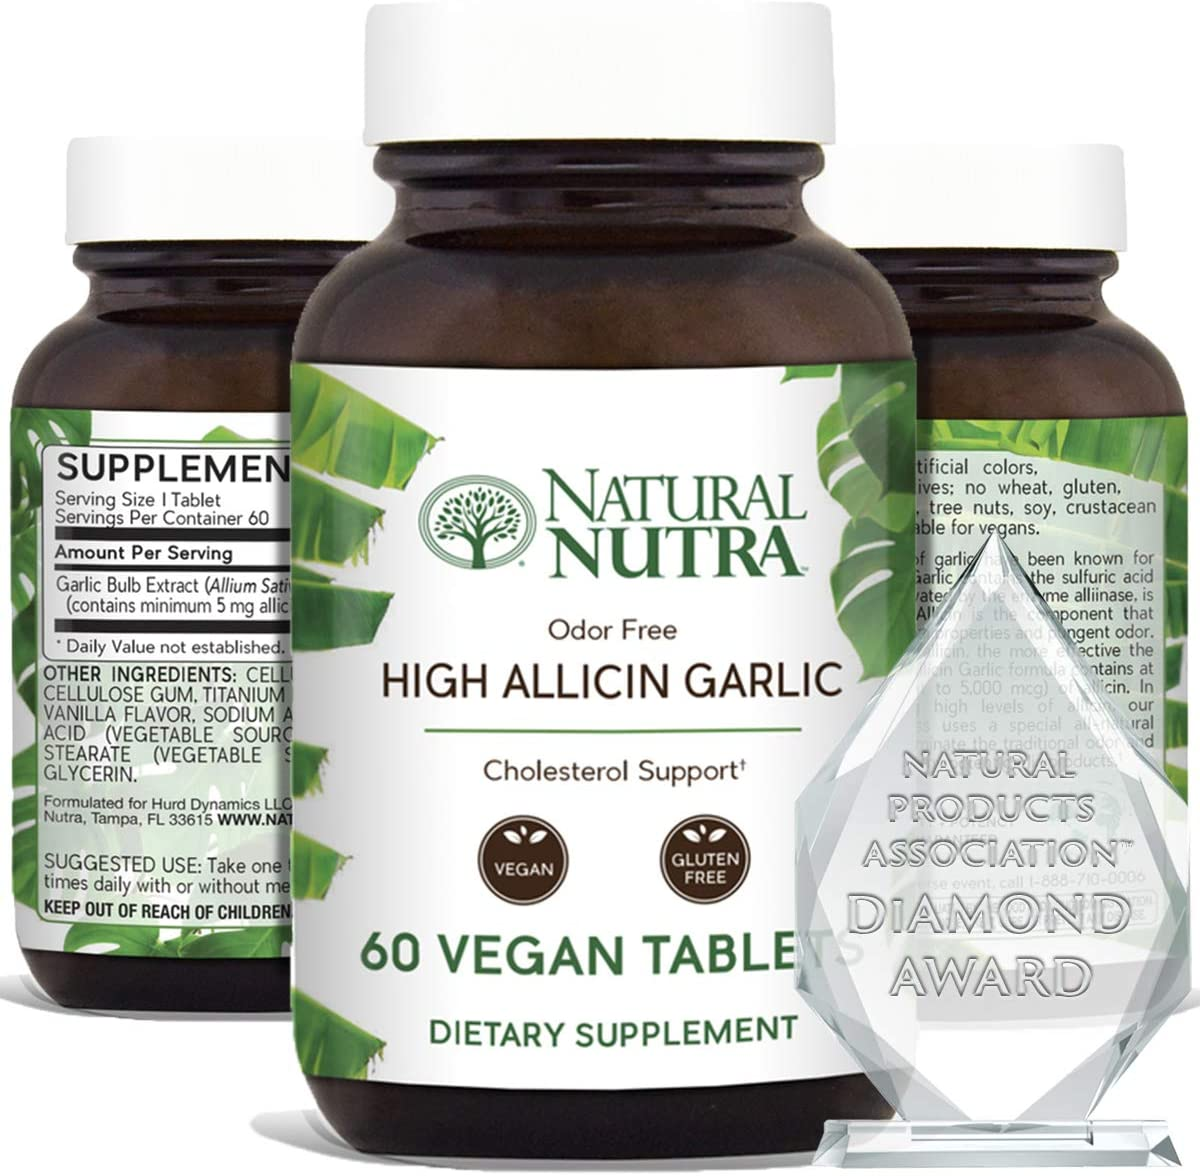 Natural Nutra High Allicin Garlic Supplement